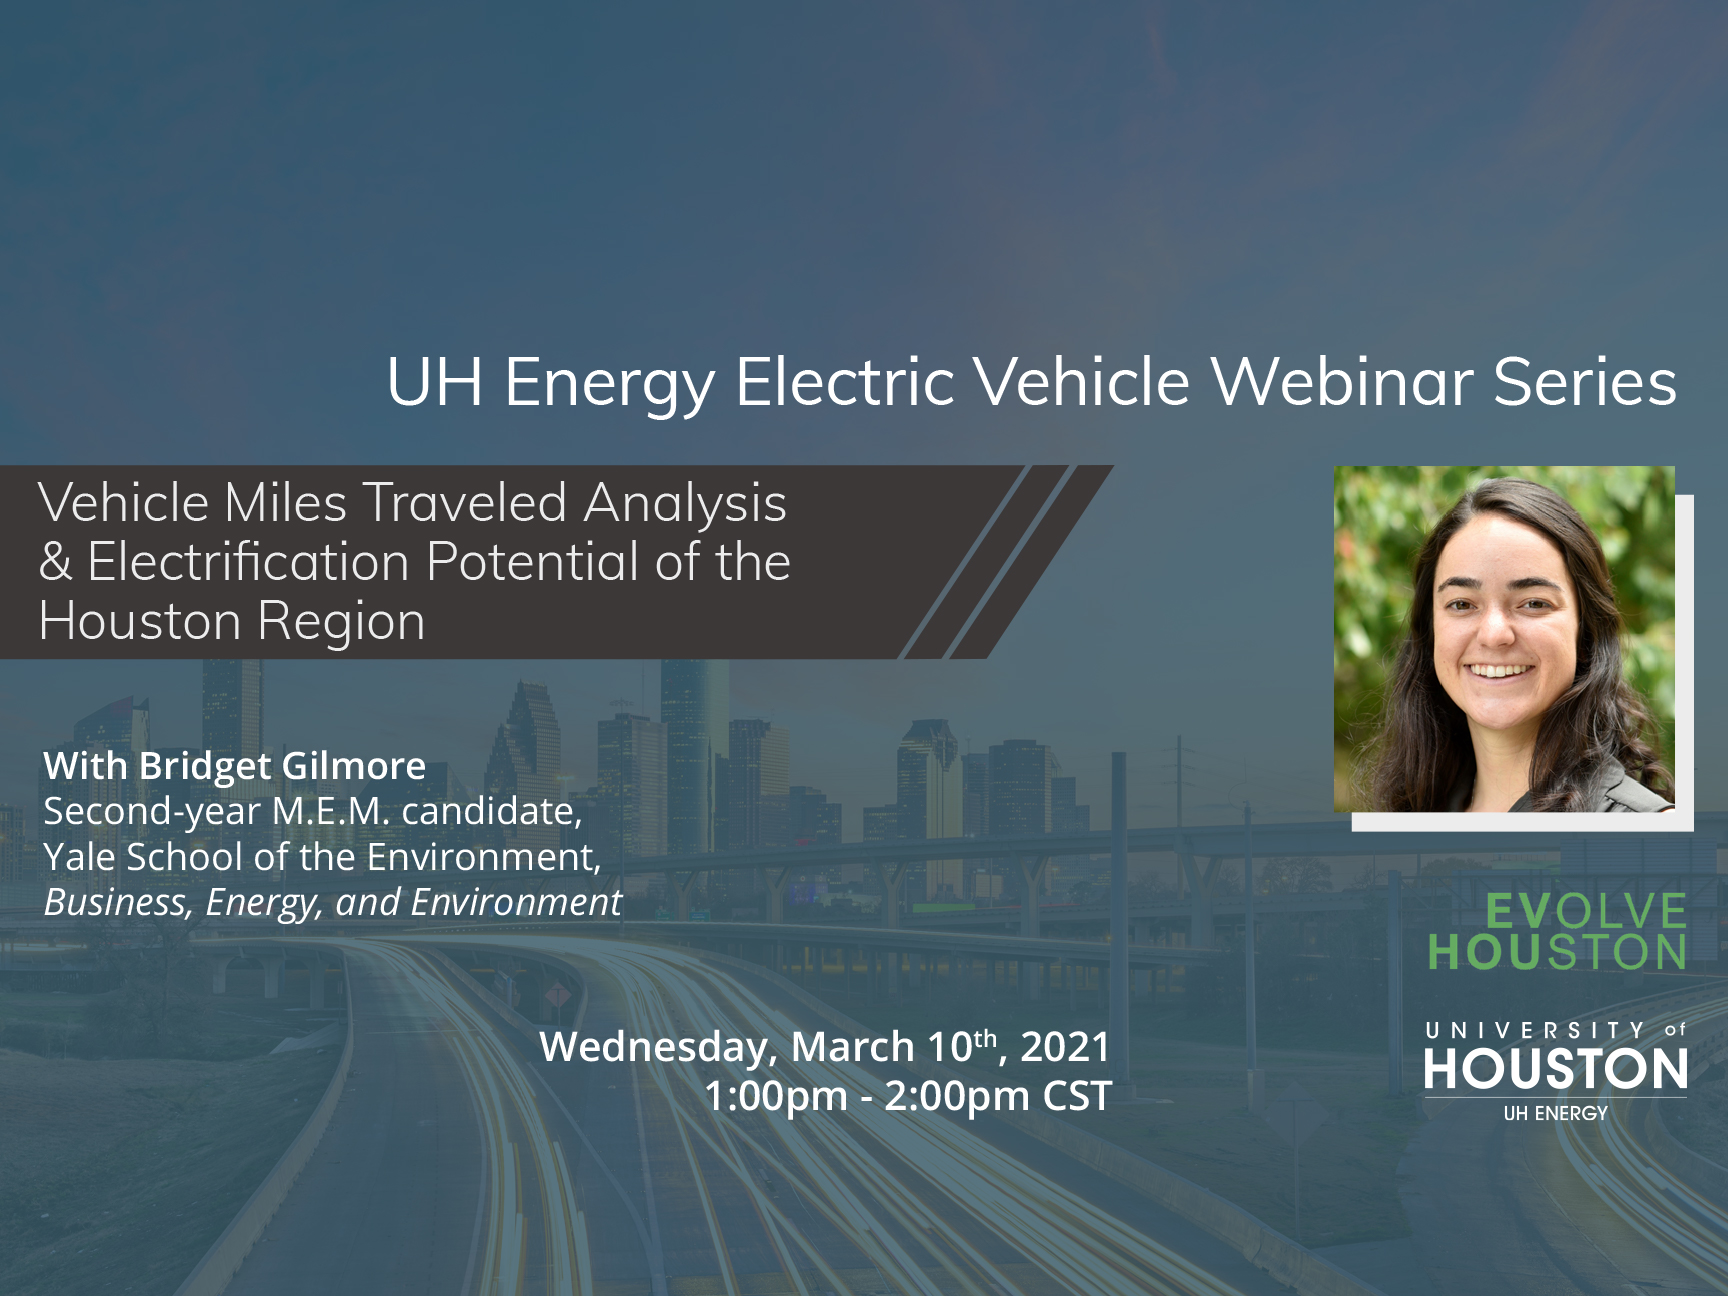 20-21 UH Energy Electric Vehicle Webinar Series: Vehicle Miles Traveled Analysis & Electrification Potential of the Houston Region Image